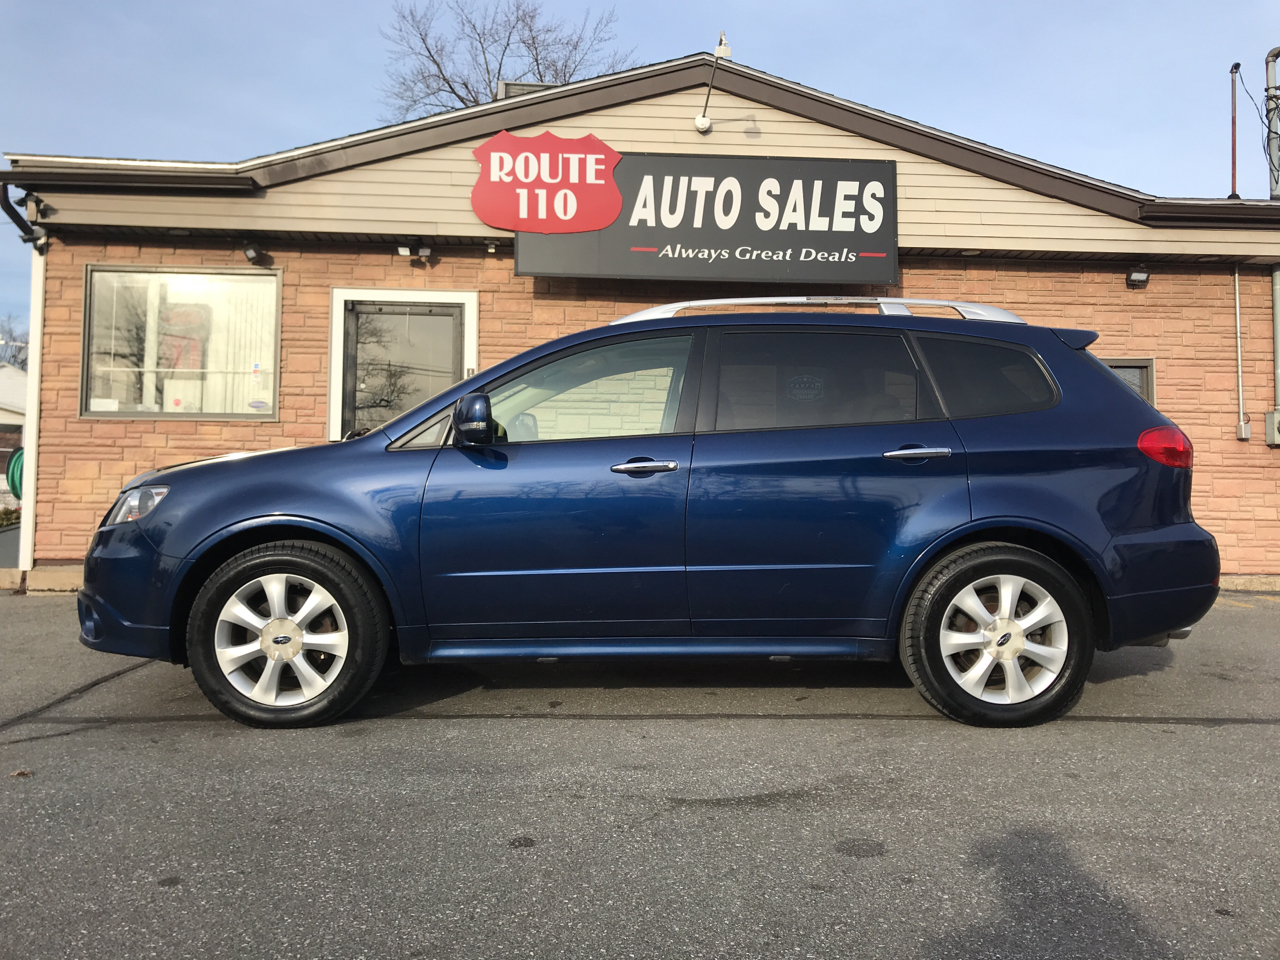 2011 Subaru Tribeca Limited 7-Passenger with Navigation and Rear DVD